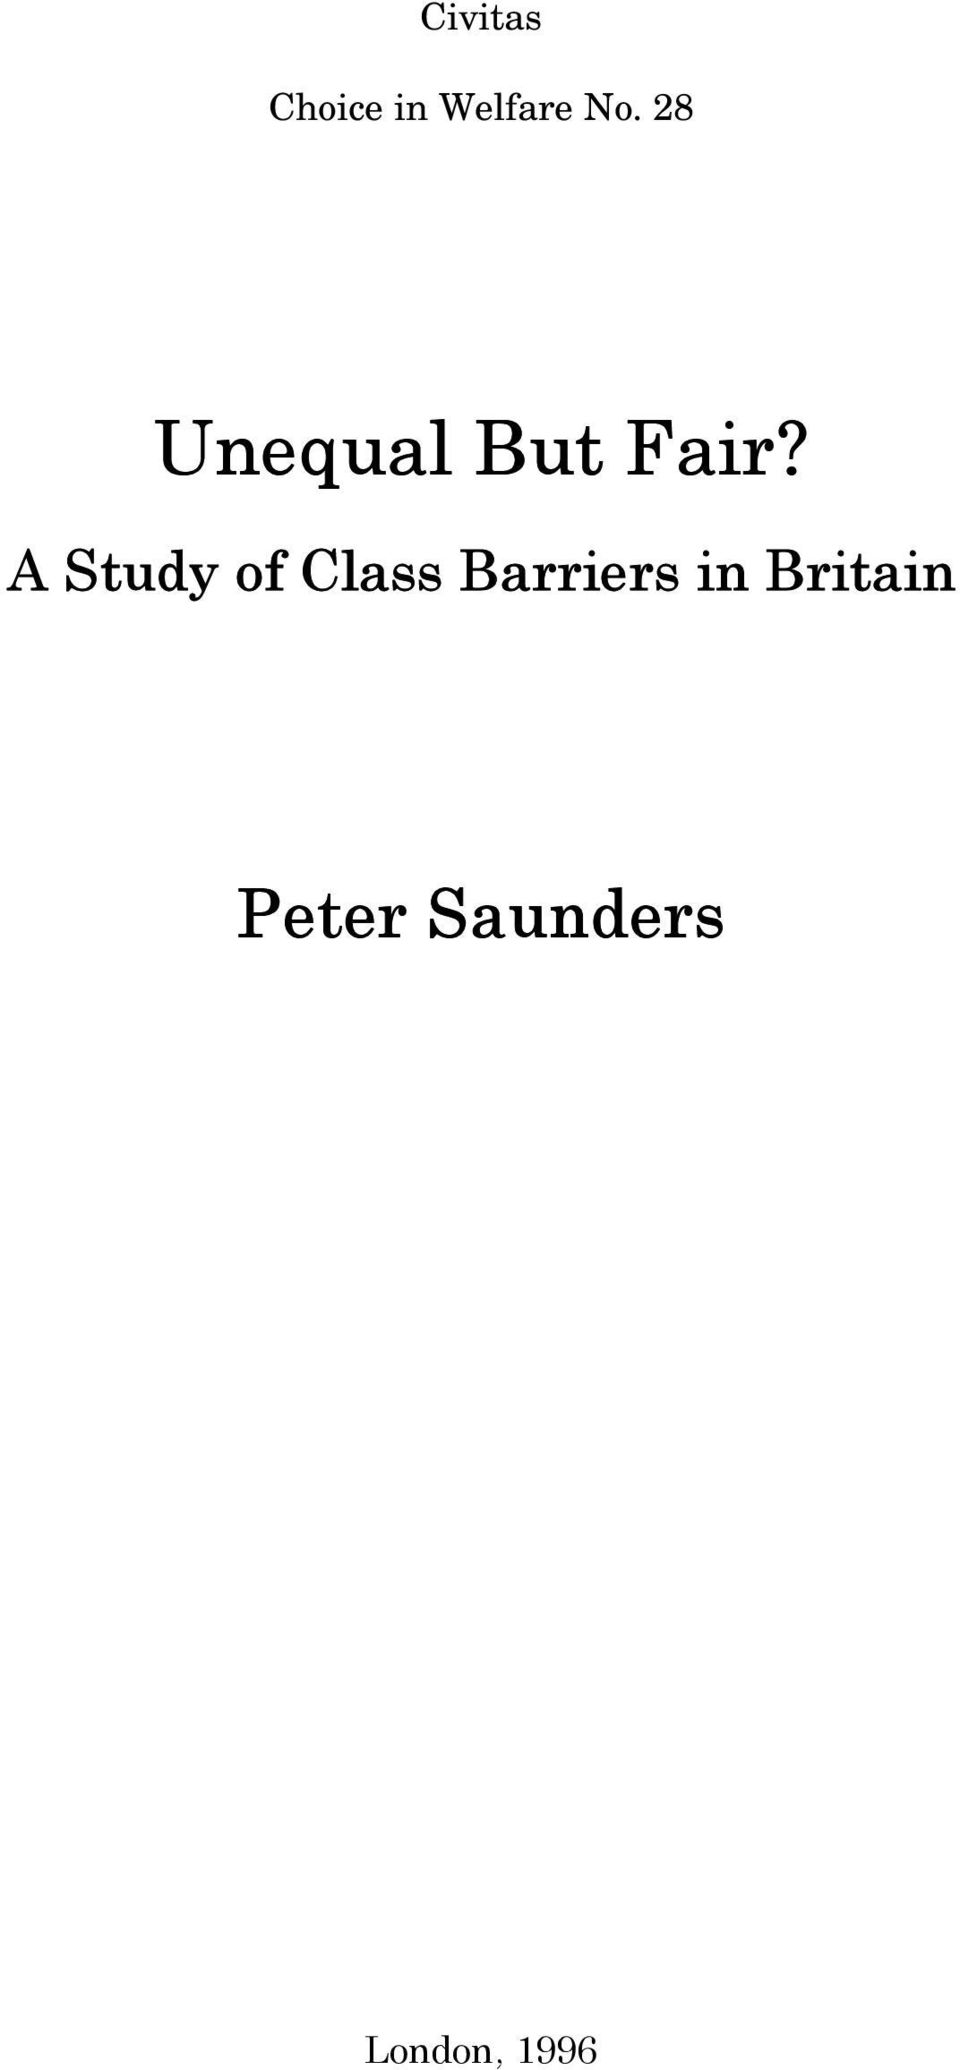 A Study of Class Barriers in